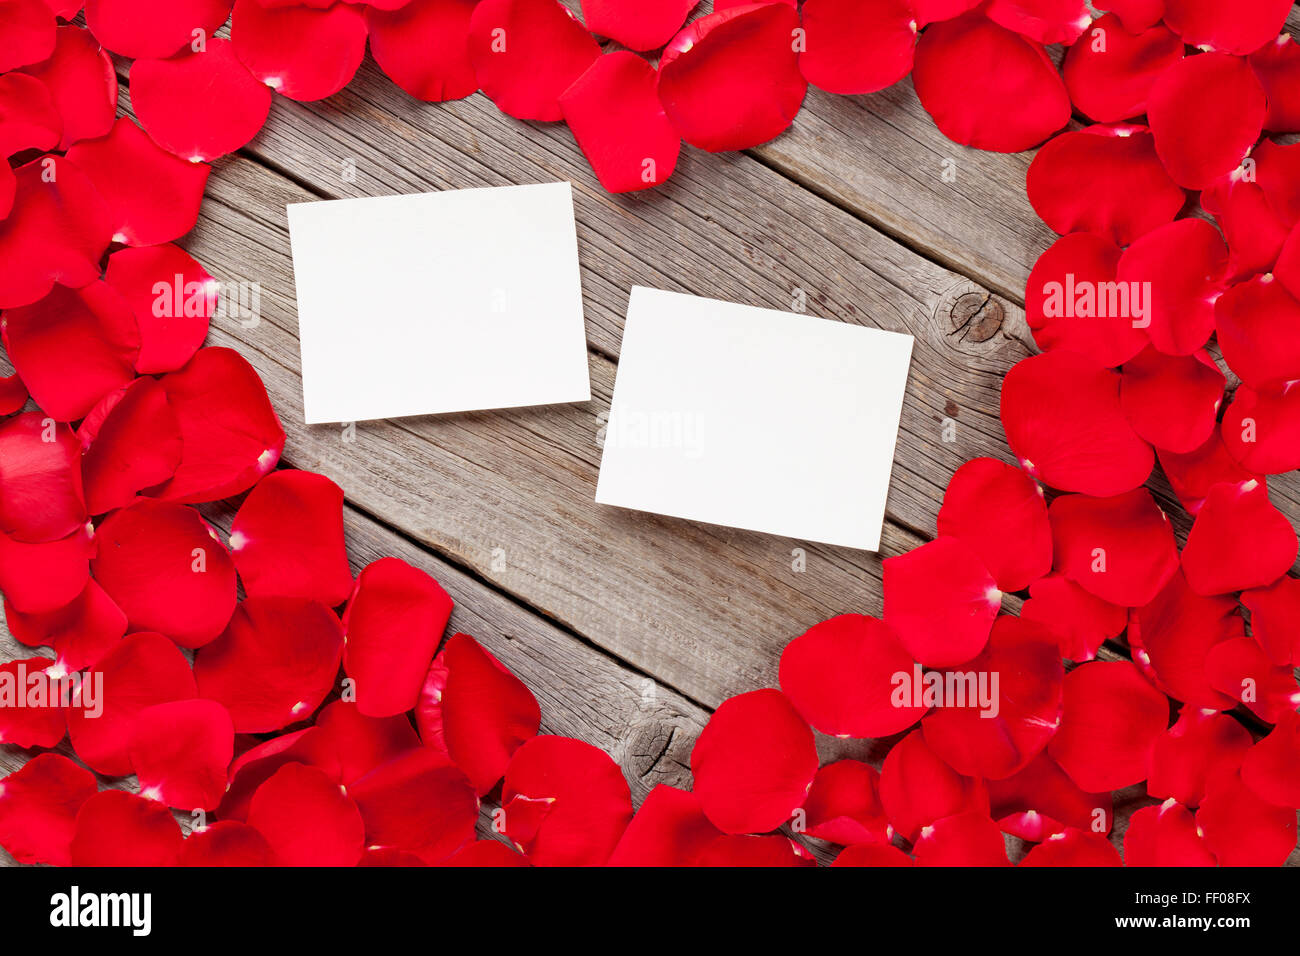 valentines day blank photo frames over wooden background and red rose petals